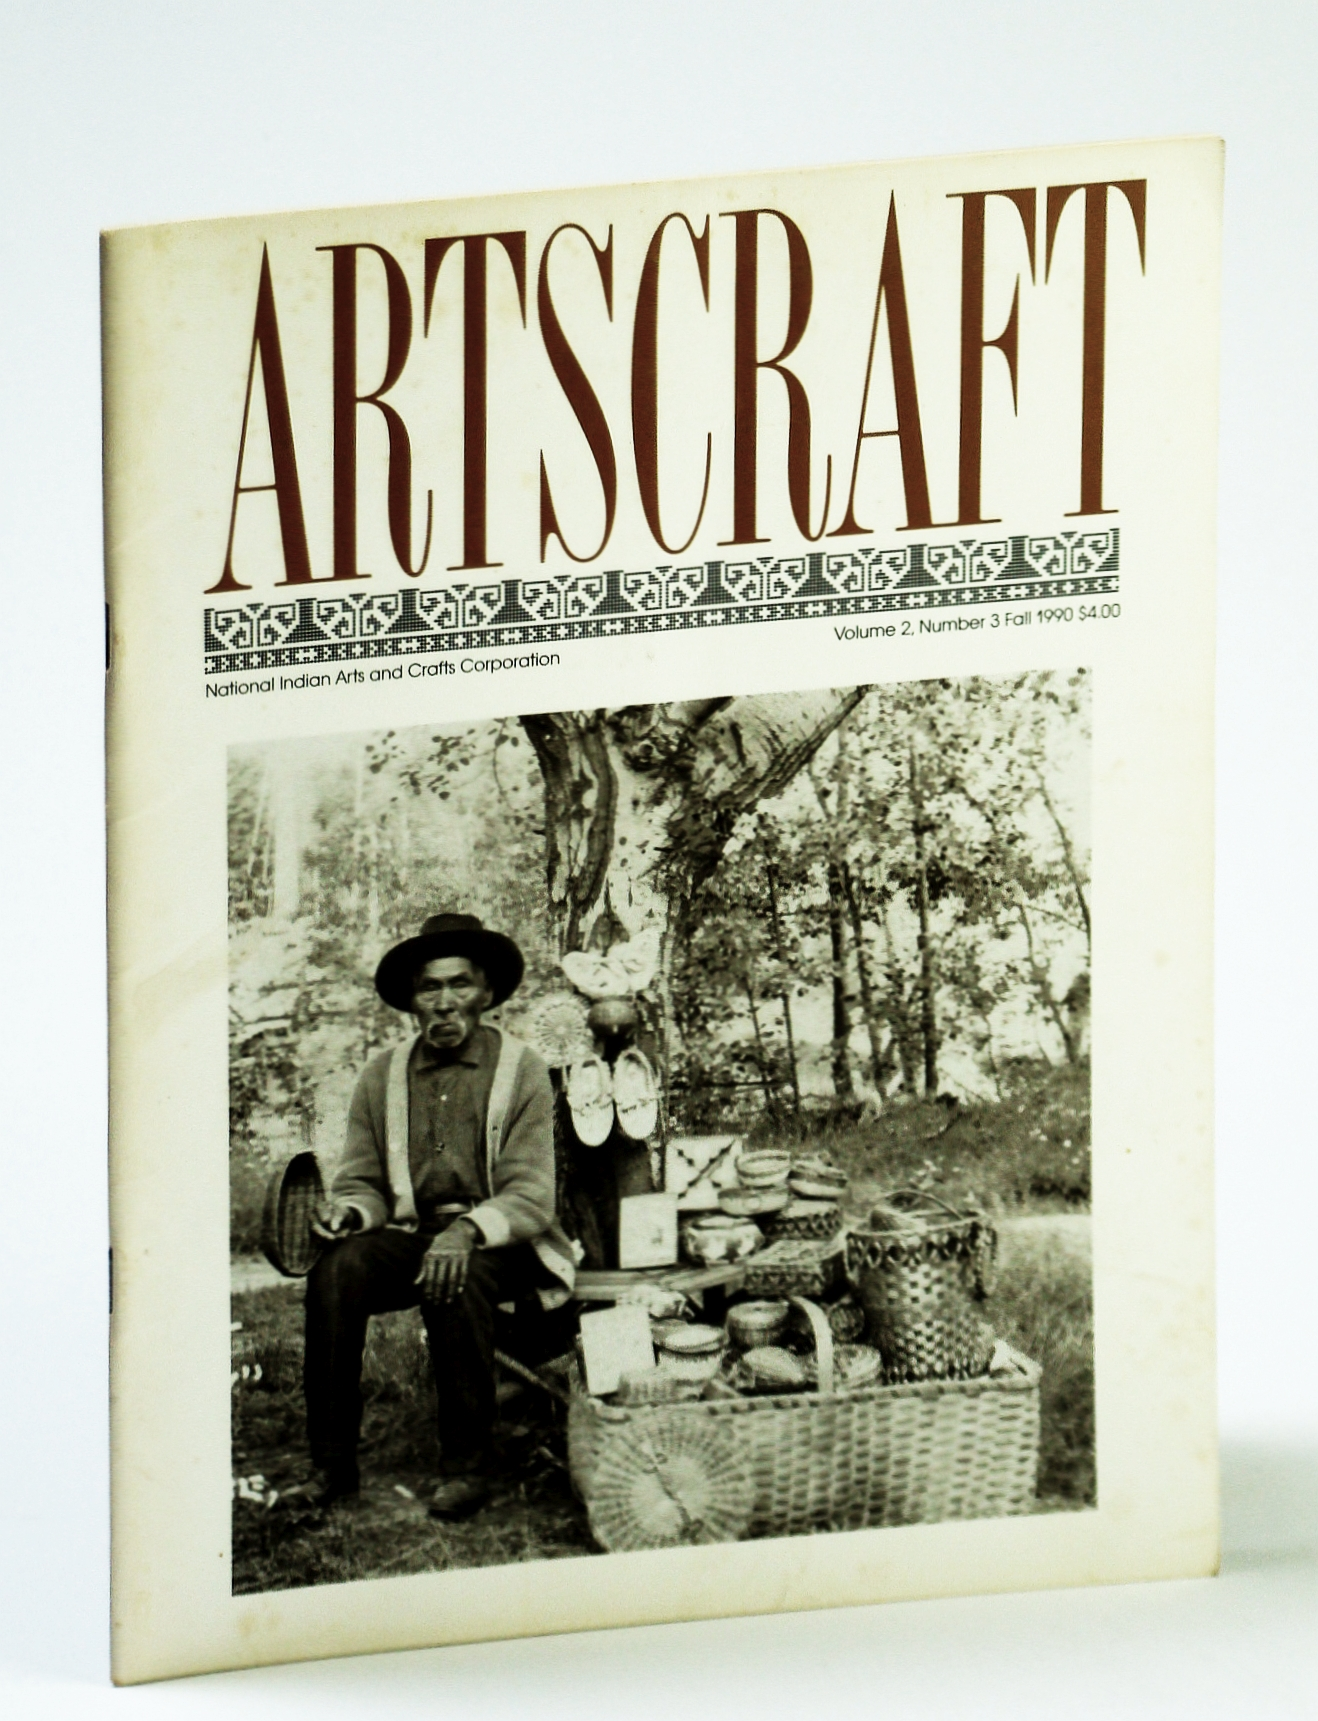 Image for Artscraft Magazine, Volume 2, Number 3, Fall 1990: Bob Boyer